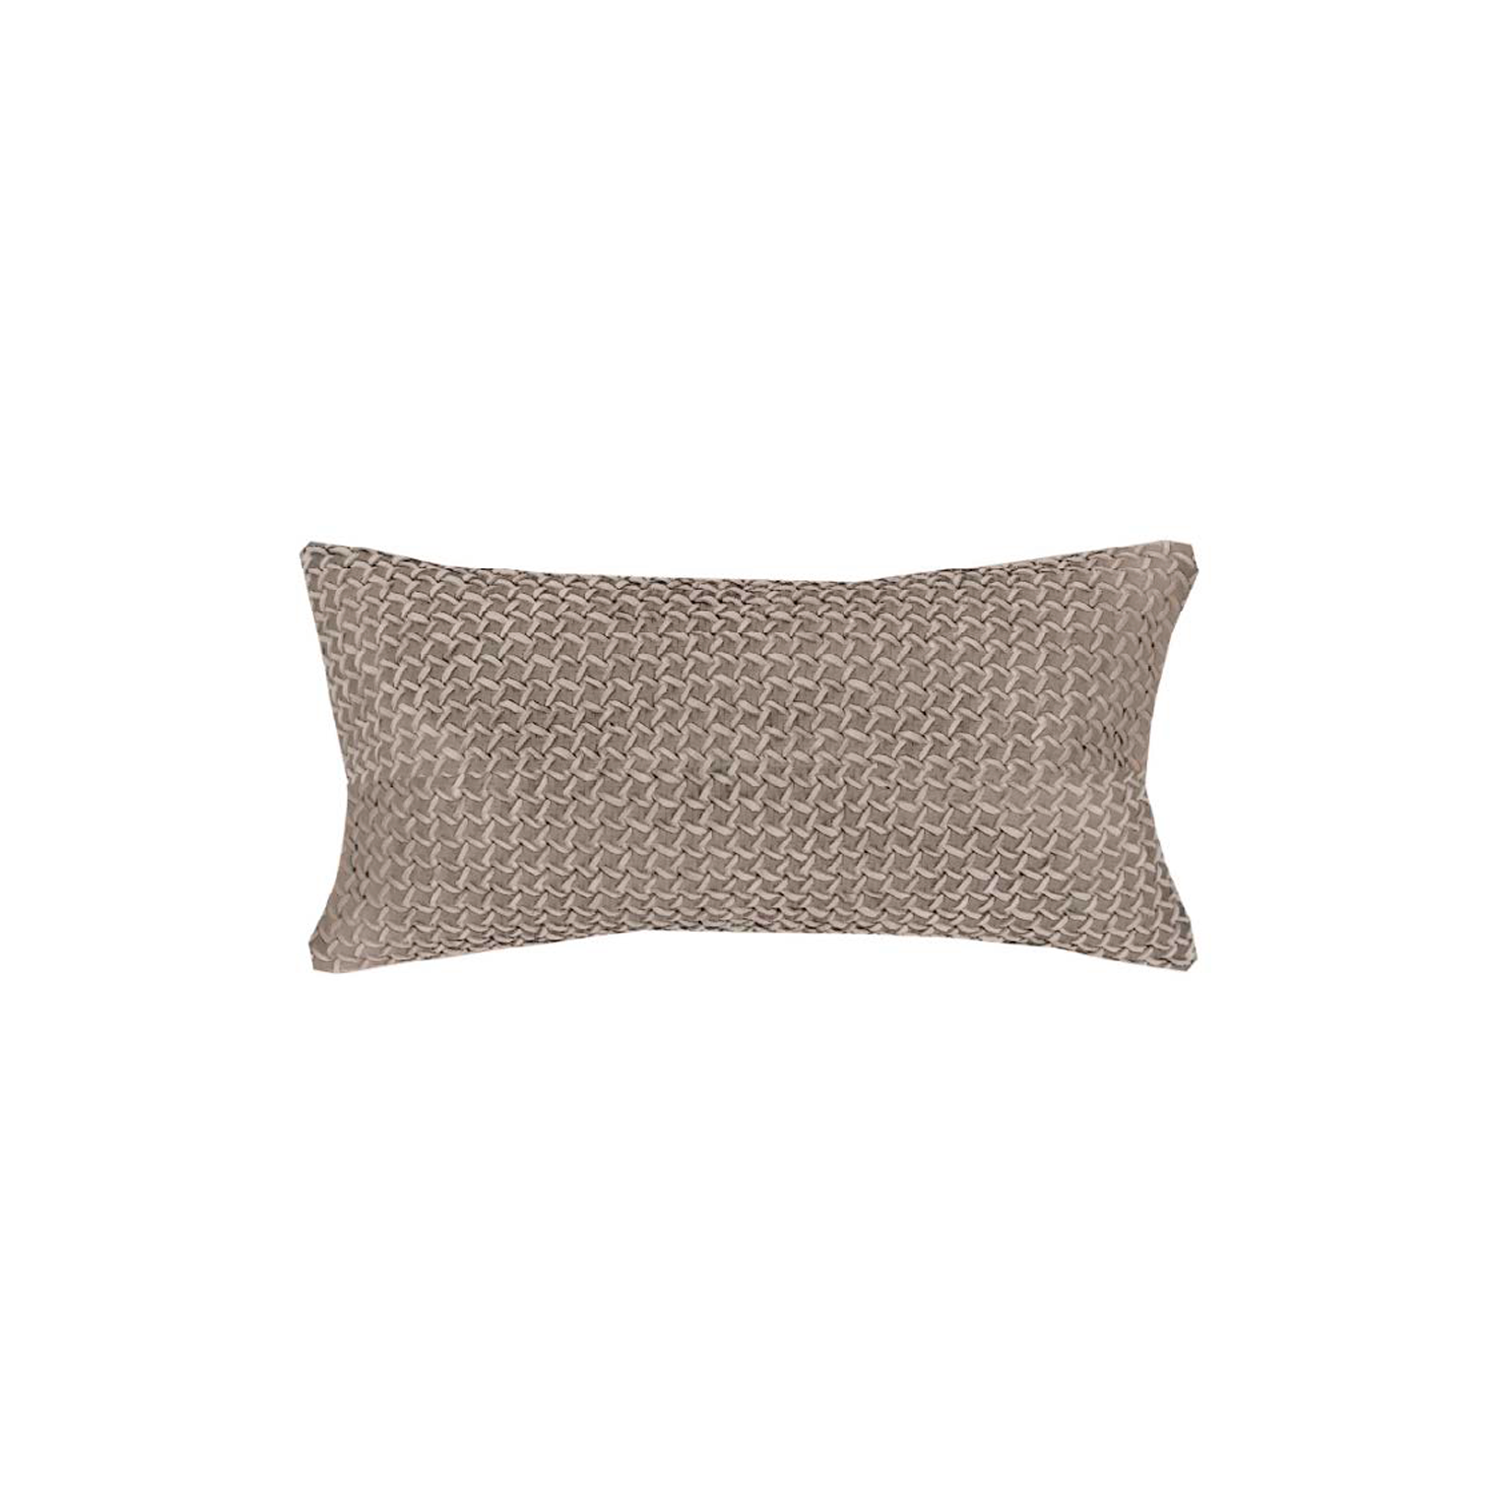 Mini Catavento Woven Suede Leather Cushion Small - The Mini Catavento Woven Suede Leather Cushion is designed to complement an ambient with a natural and sophisticated feeling. This cushion style is available in pleated leather or pleated suede leather. Elisa Atheniense woven handmade leather cushions are specially manufactured in Brazil using an exclusive treated leather that brings the soft feel touch to every single piece.   The front panel is handwoven in leather and the back panel is 100% Pes, made in Brazil.  The inner cushion is available in Hollow Fibre and European Duck Feathers, made in the UK.  Please enquire for more information and see colour chart for reference.  | Matter of Stuff